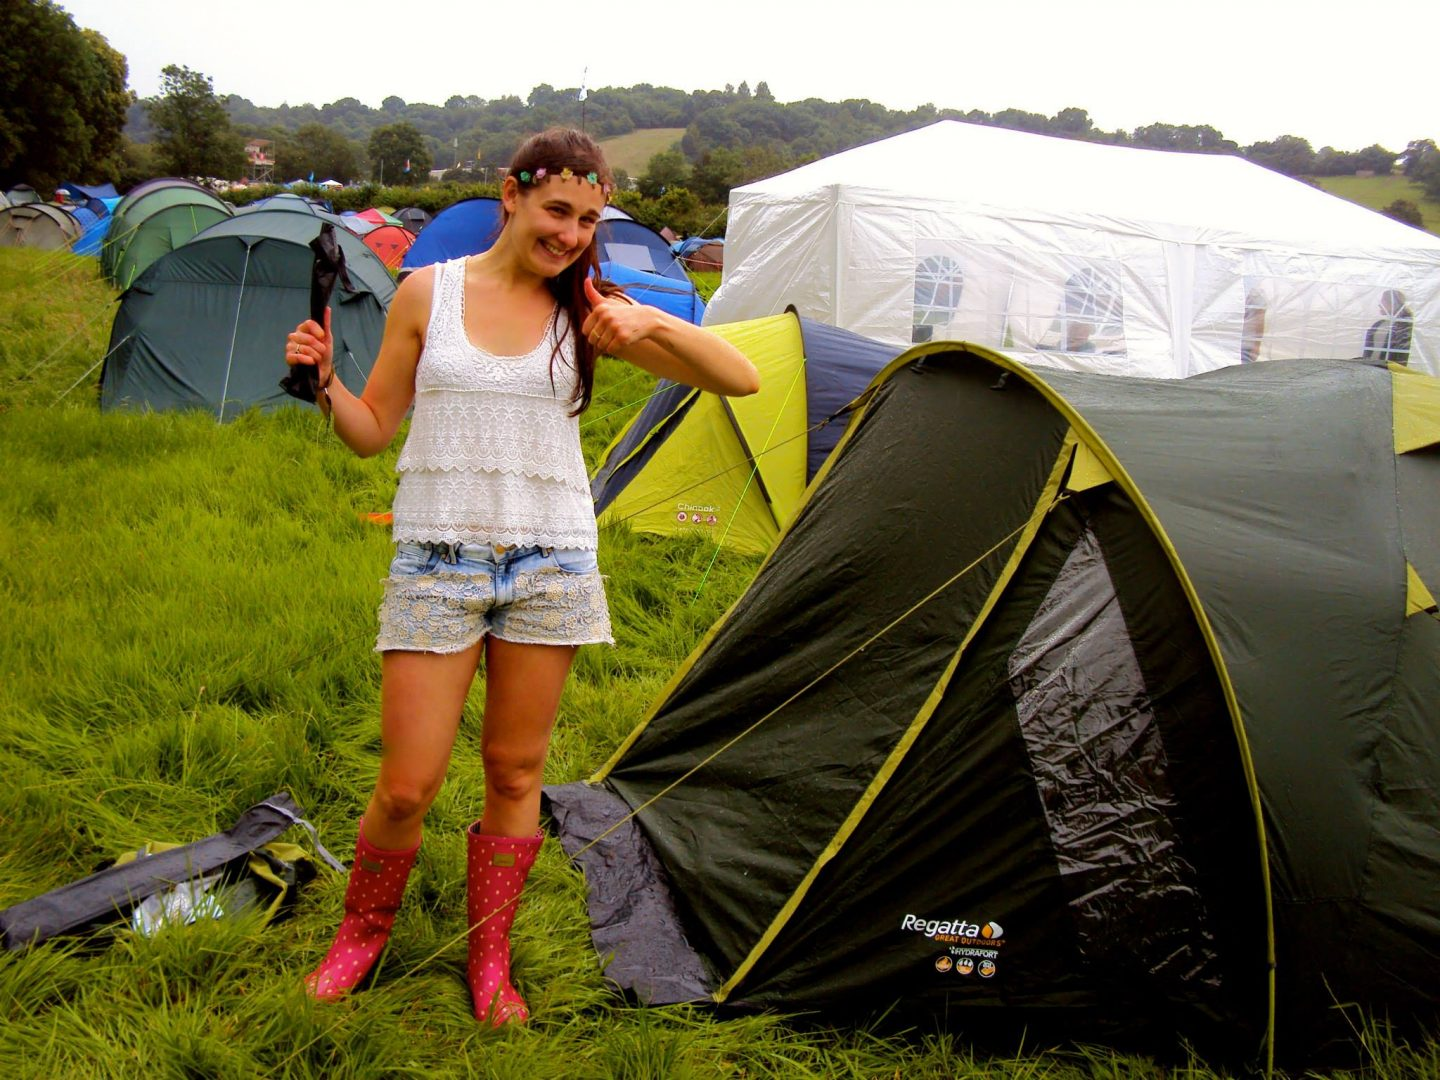 Pitching our tent at Glastonbury Festival